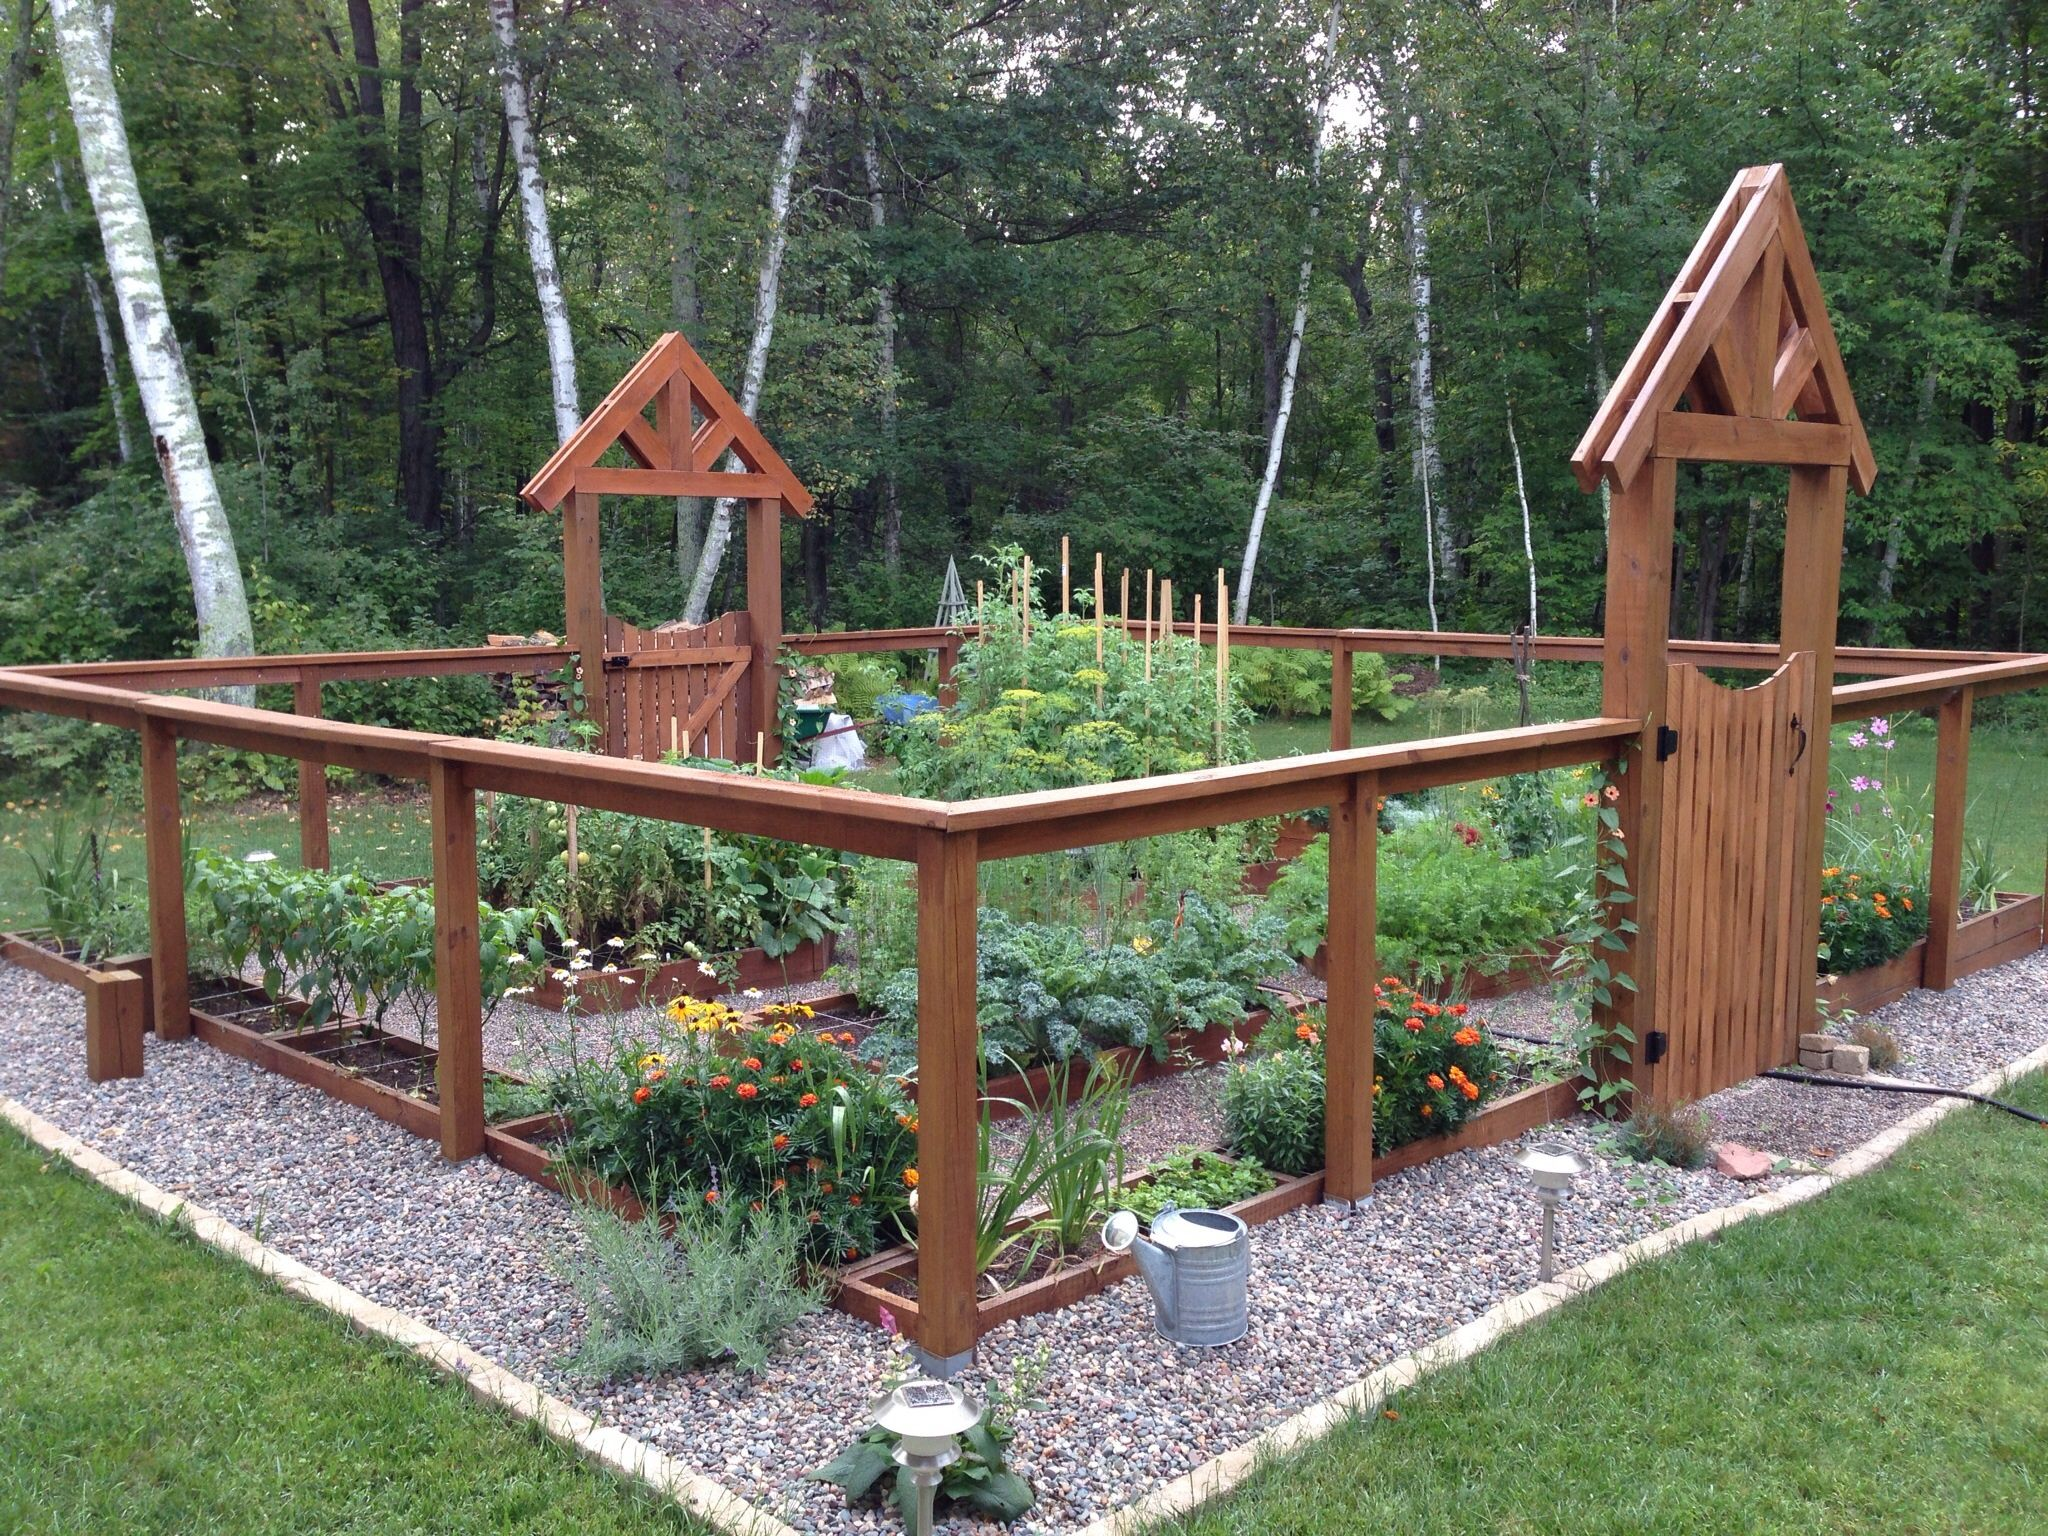 Pin by charmaine hansen on deer proof gardens pinterest - How to keep deer out of garden home remedies ...